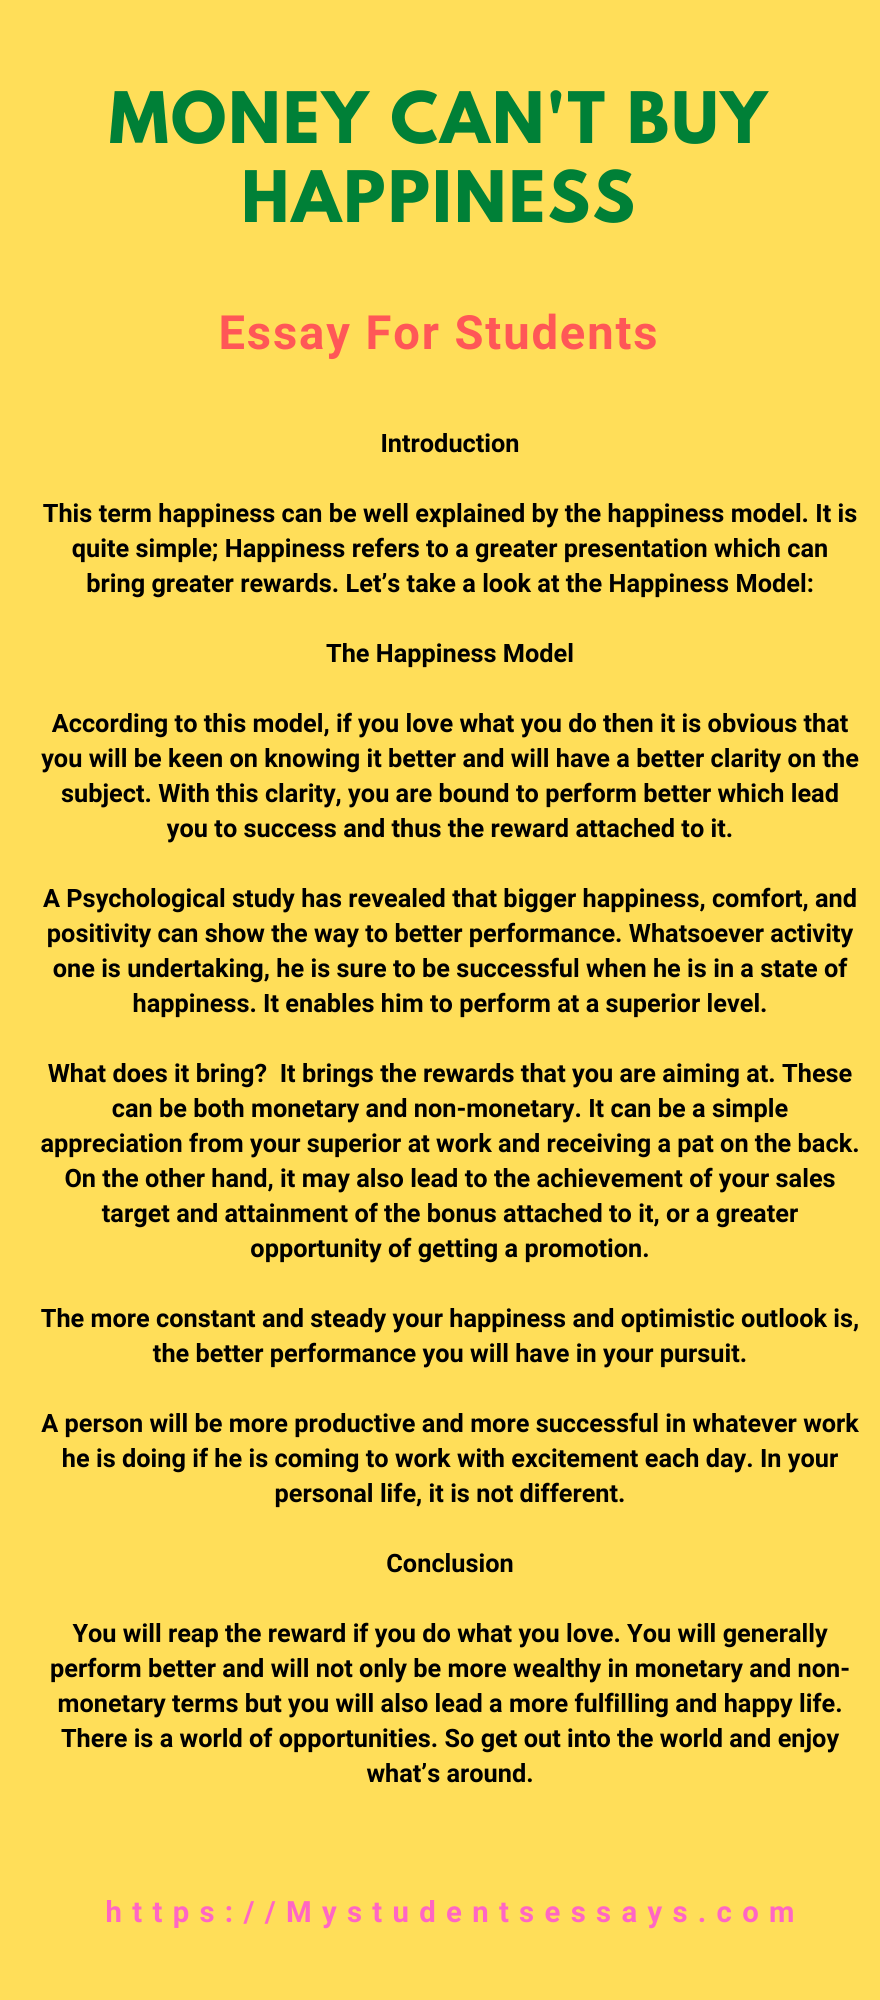 Essay on money can't buy happiness for students